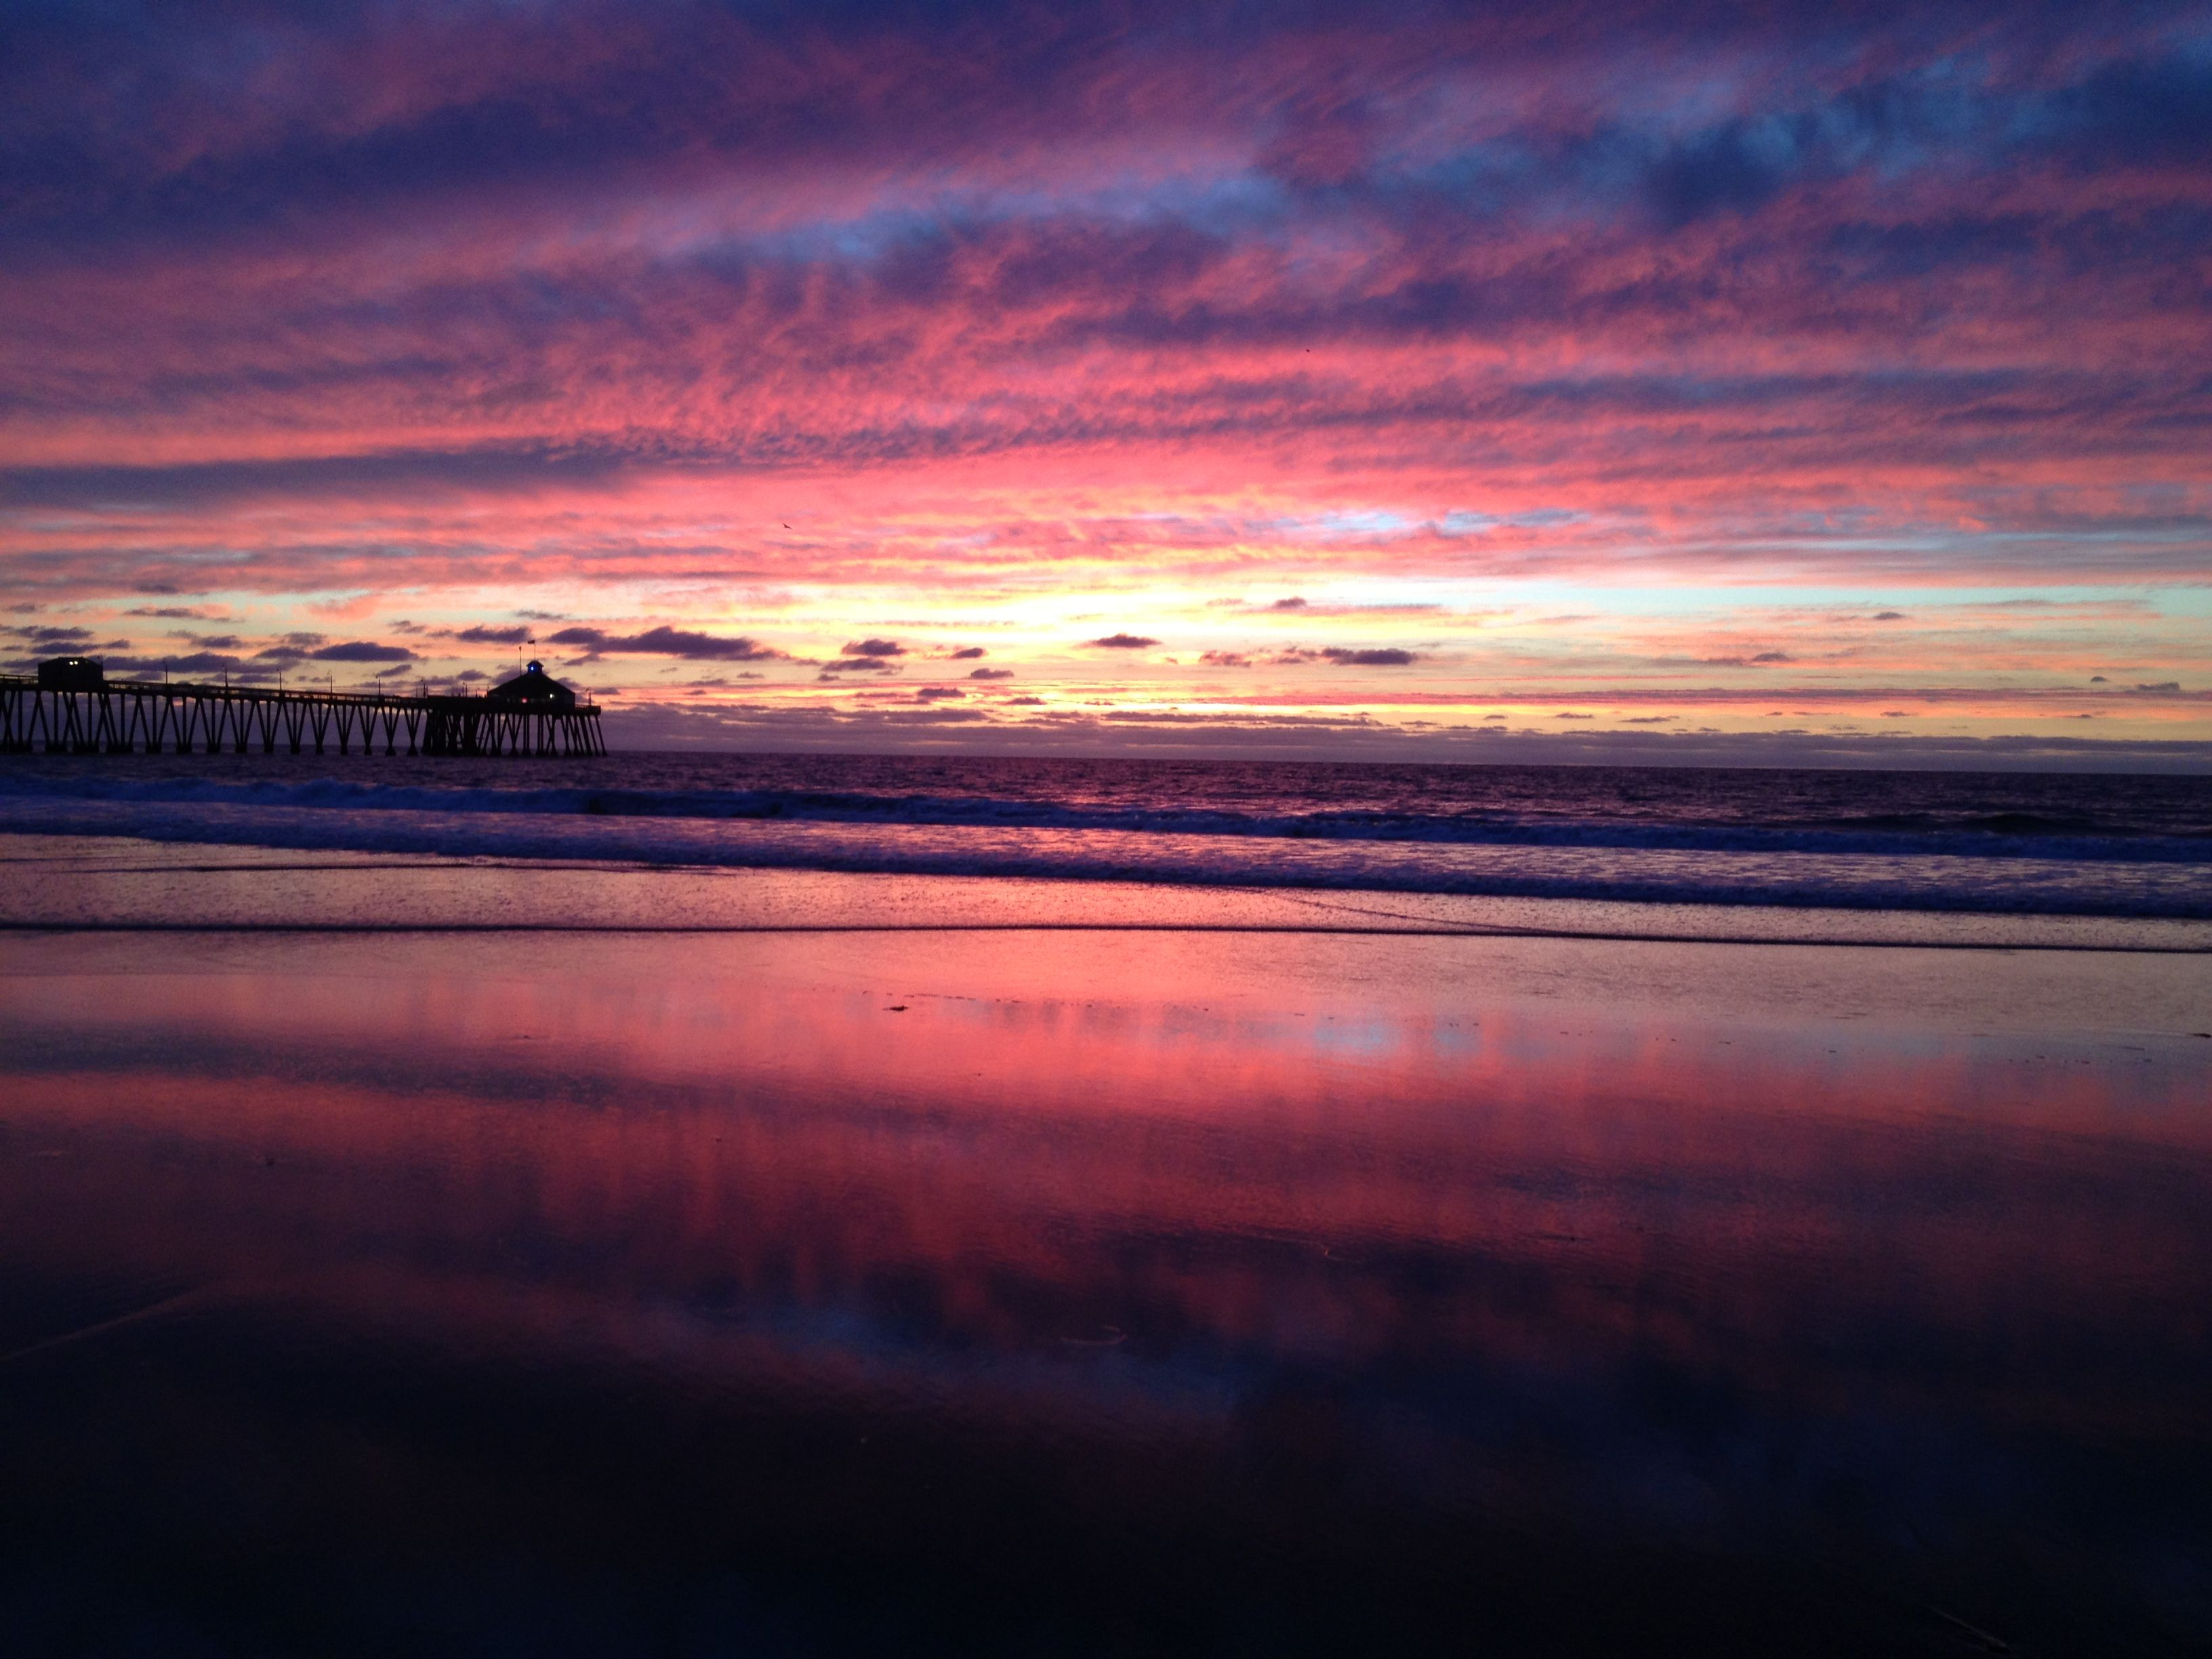 Imperial beach sunset. My inspiration for my bedroom color palette.